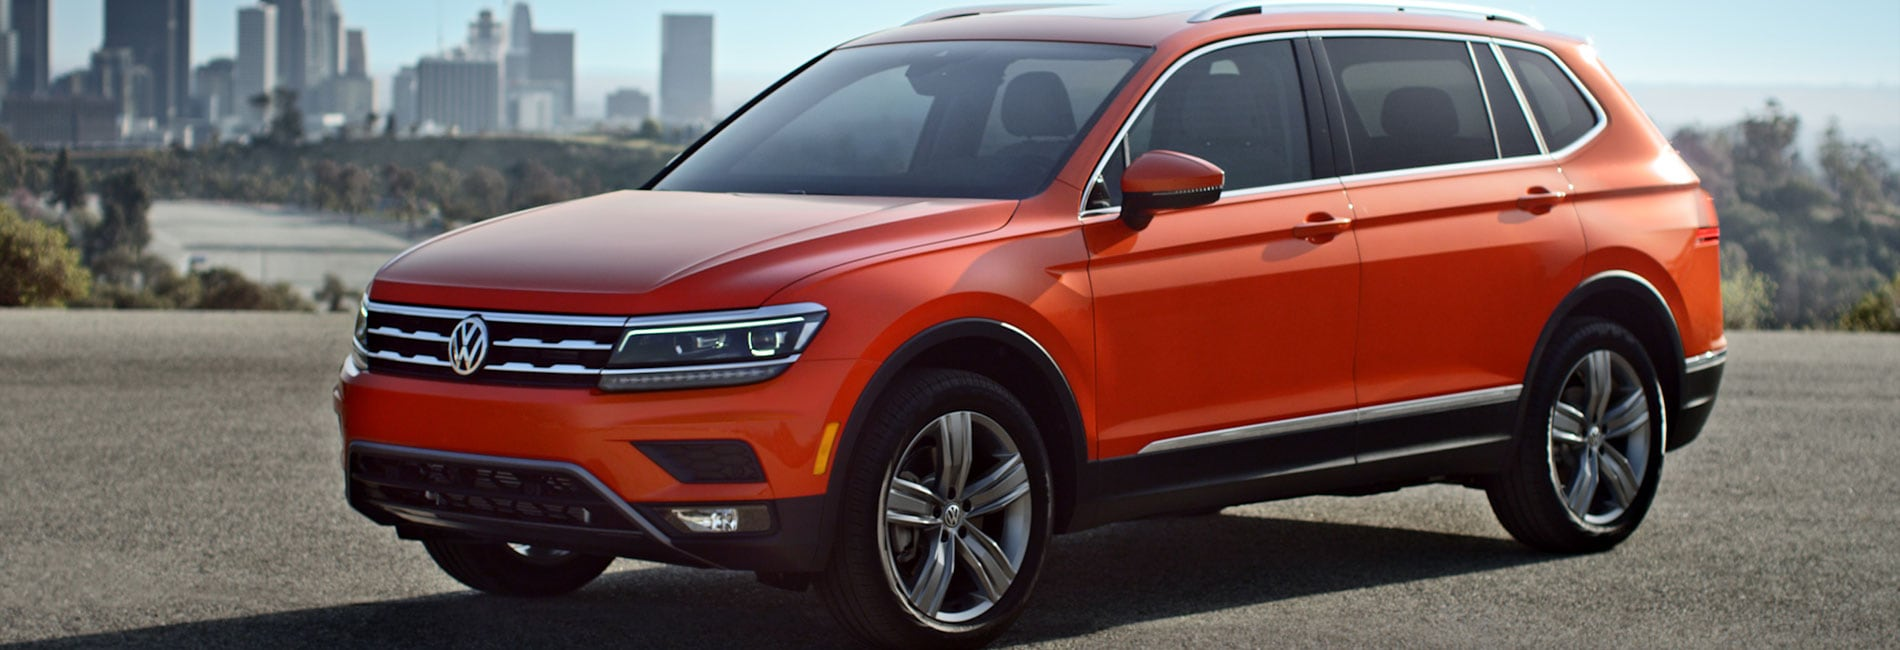 Volkswagen Tiguan Exterior Vehicle Features